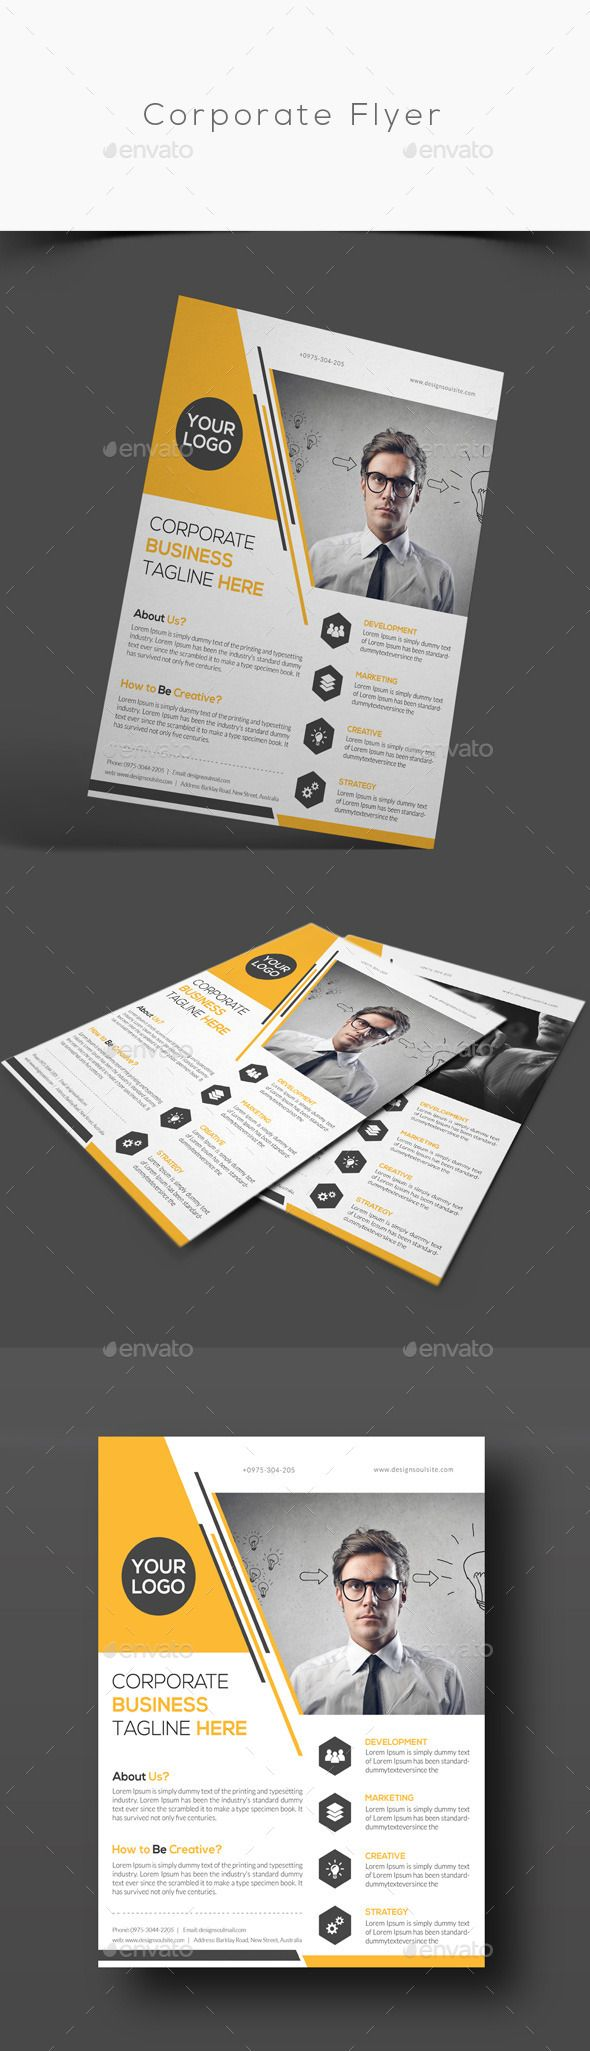 Corporate Flyer Template #design Download: http://graphicriver.net/item/corporate-flyer/12605010?ref=ksioks